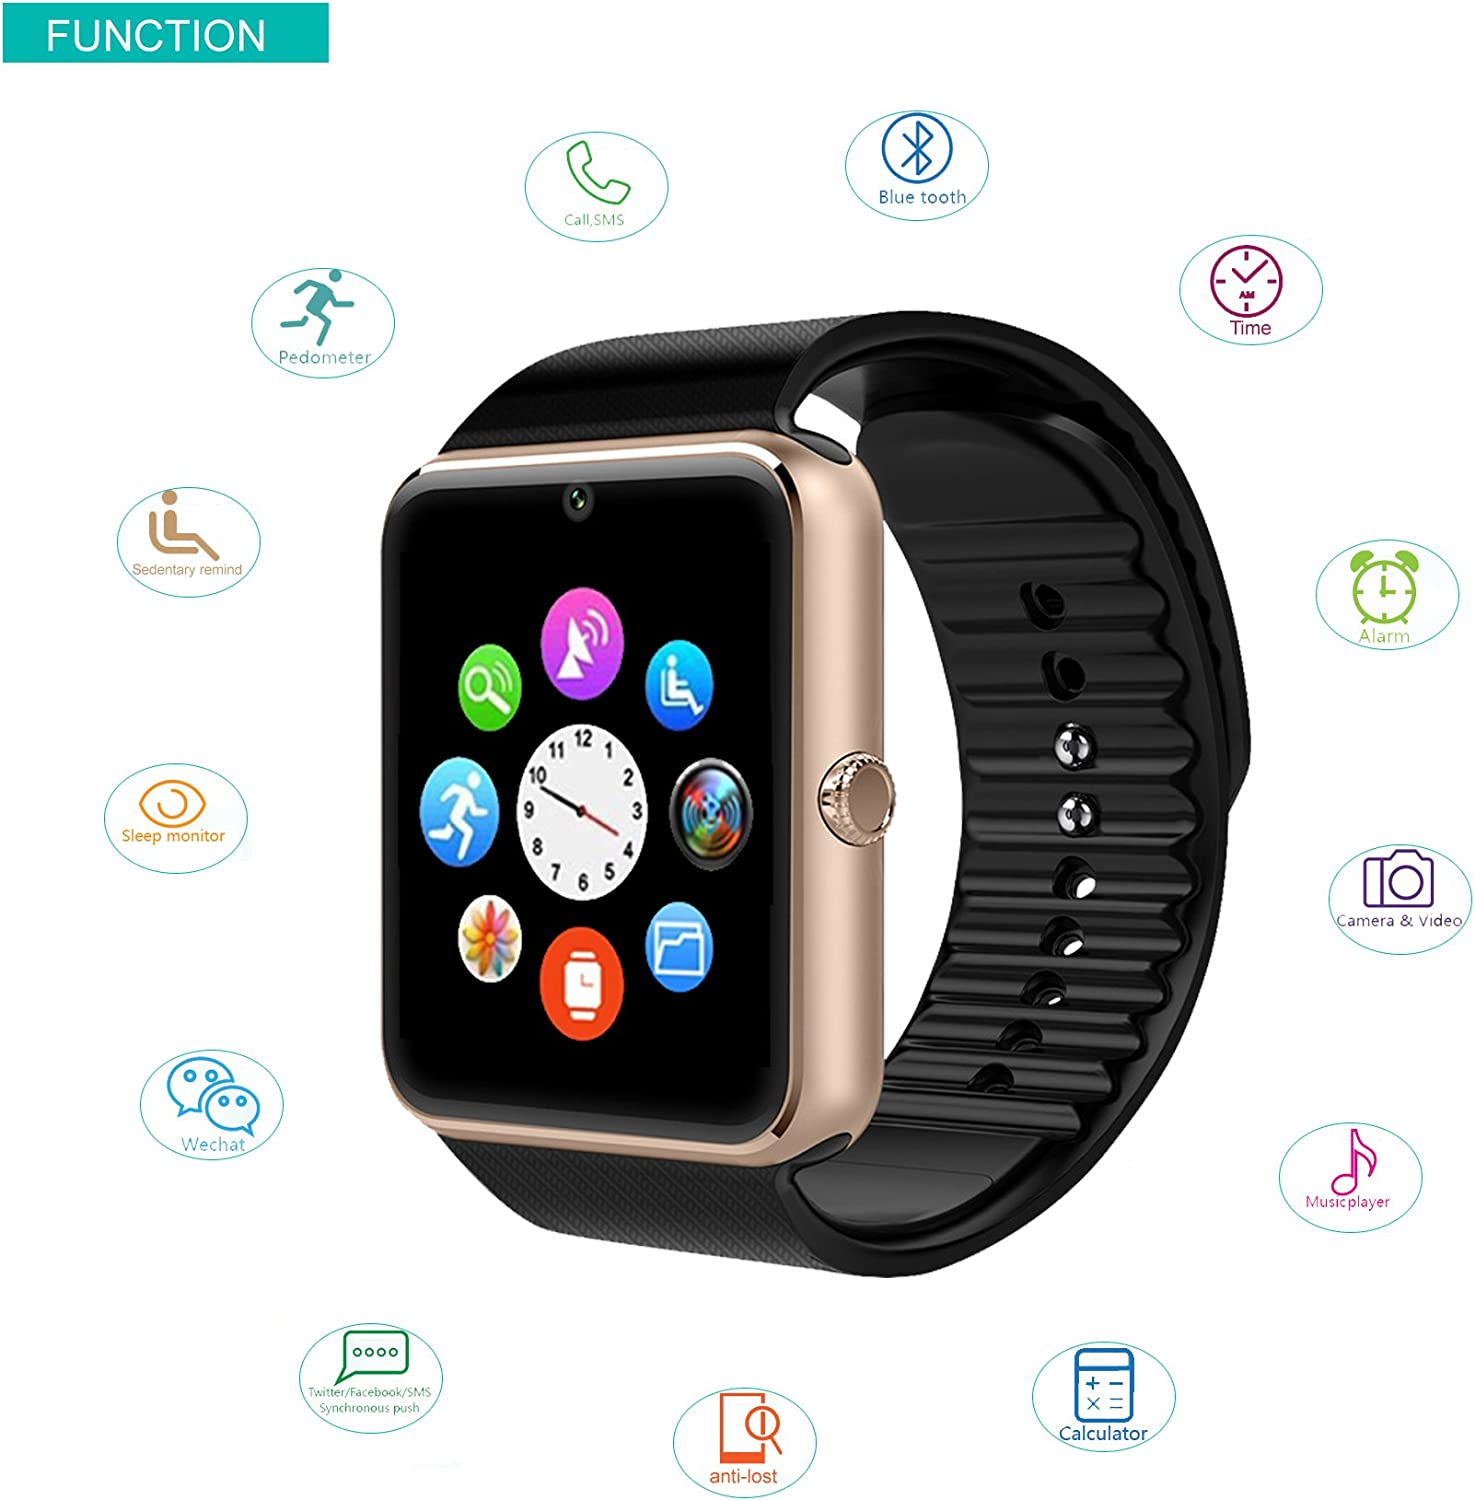 Amazon.com: Willful SW016 Bluetooth Smart Watch with Camera ...